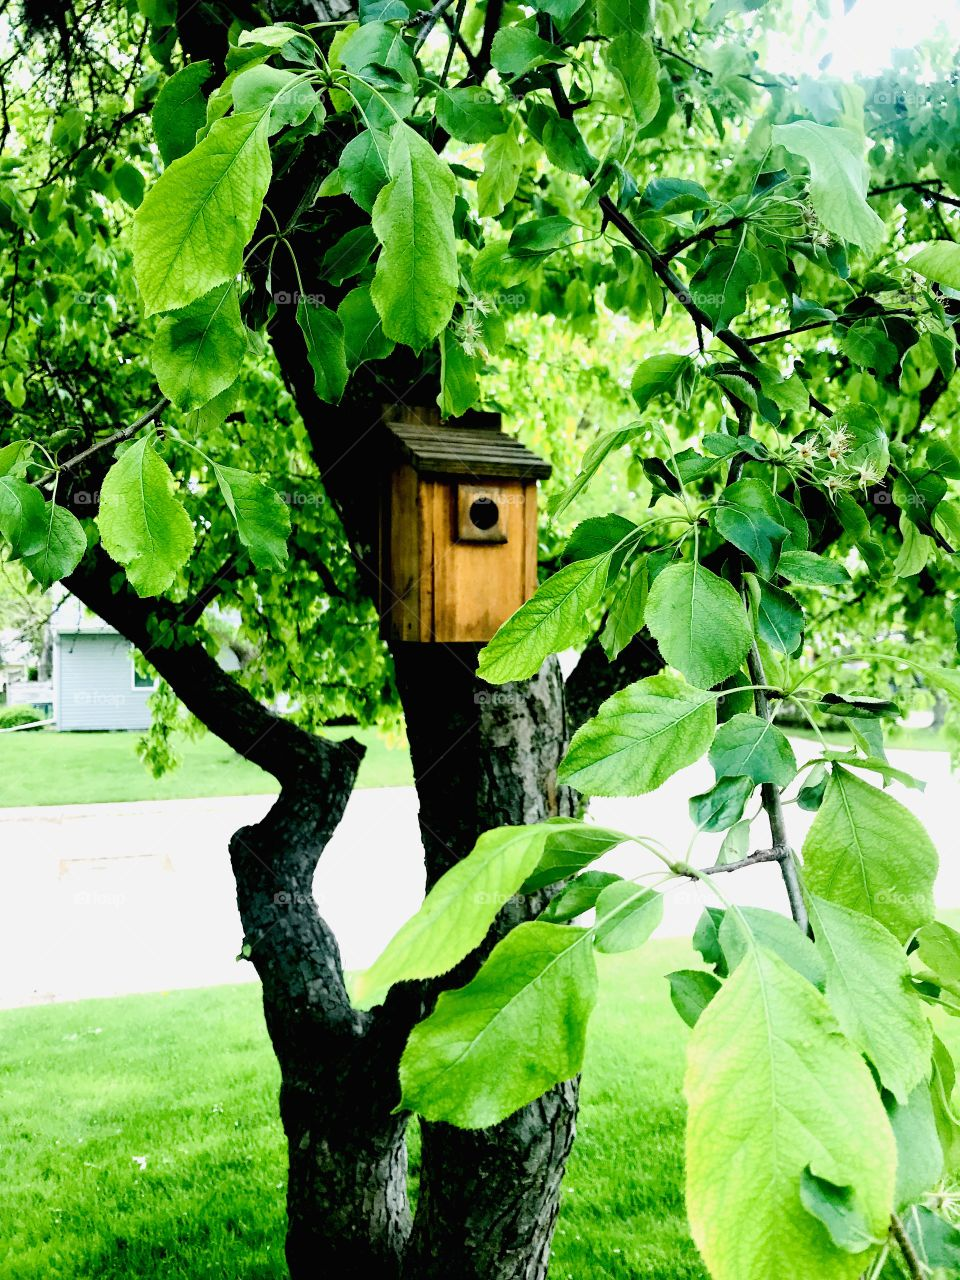 Gorgeous tree and birdhouse from a very well kept garden captured on a beautiful afternoon!